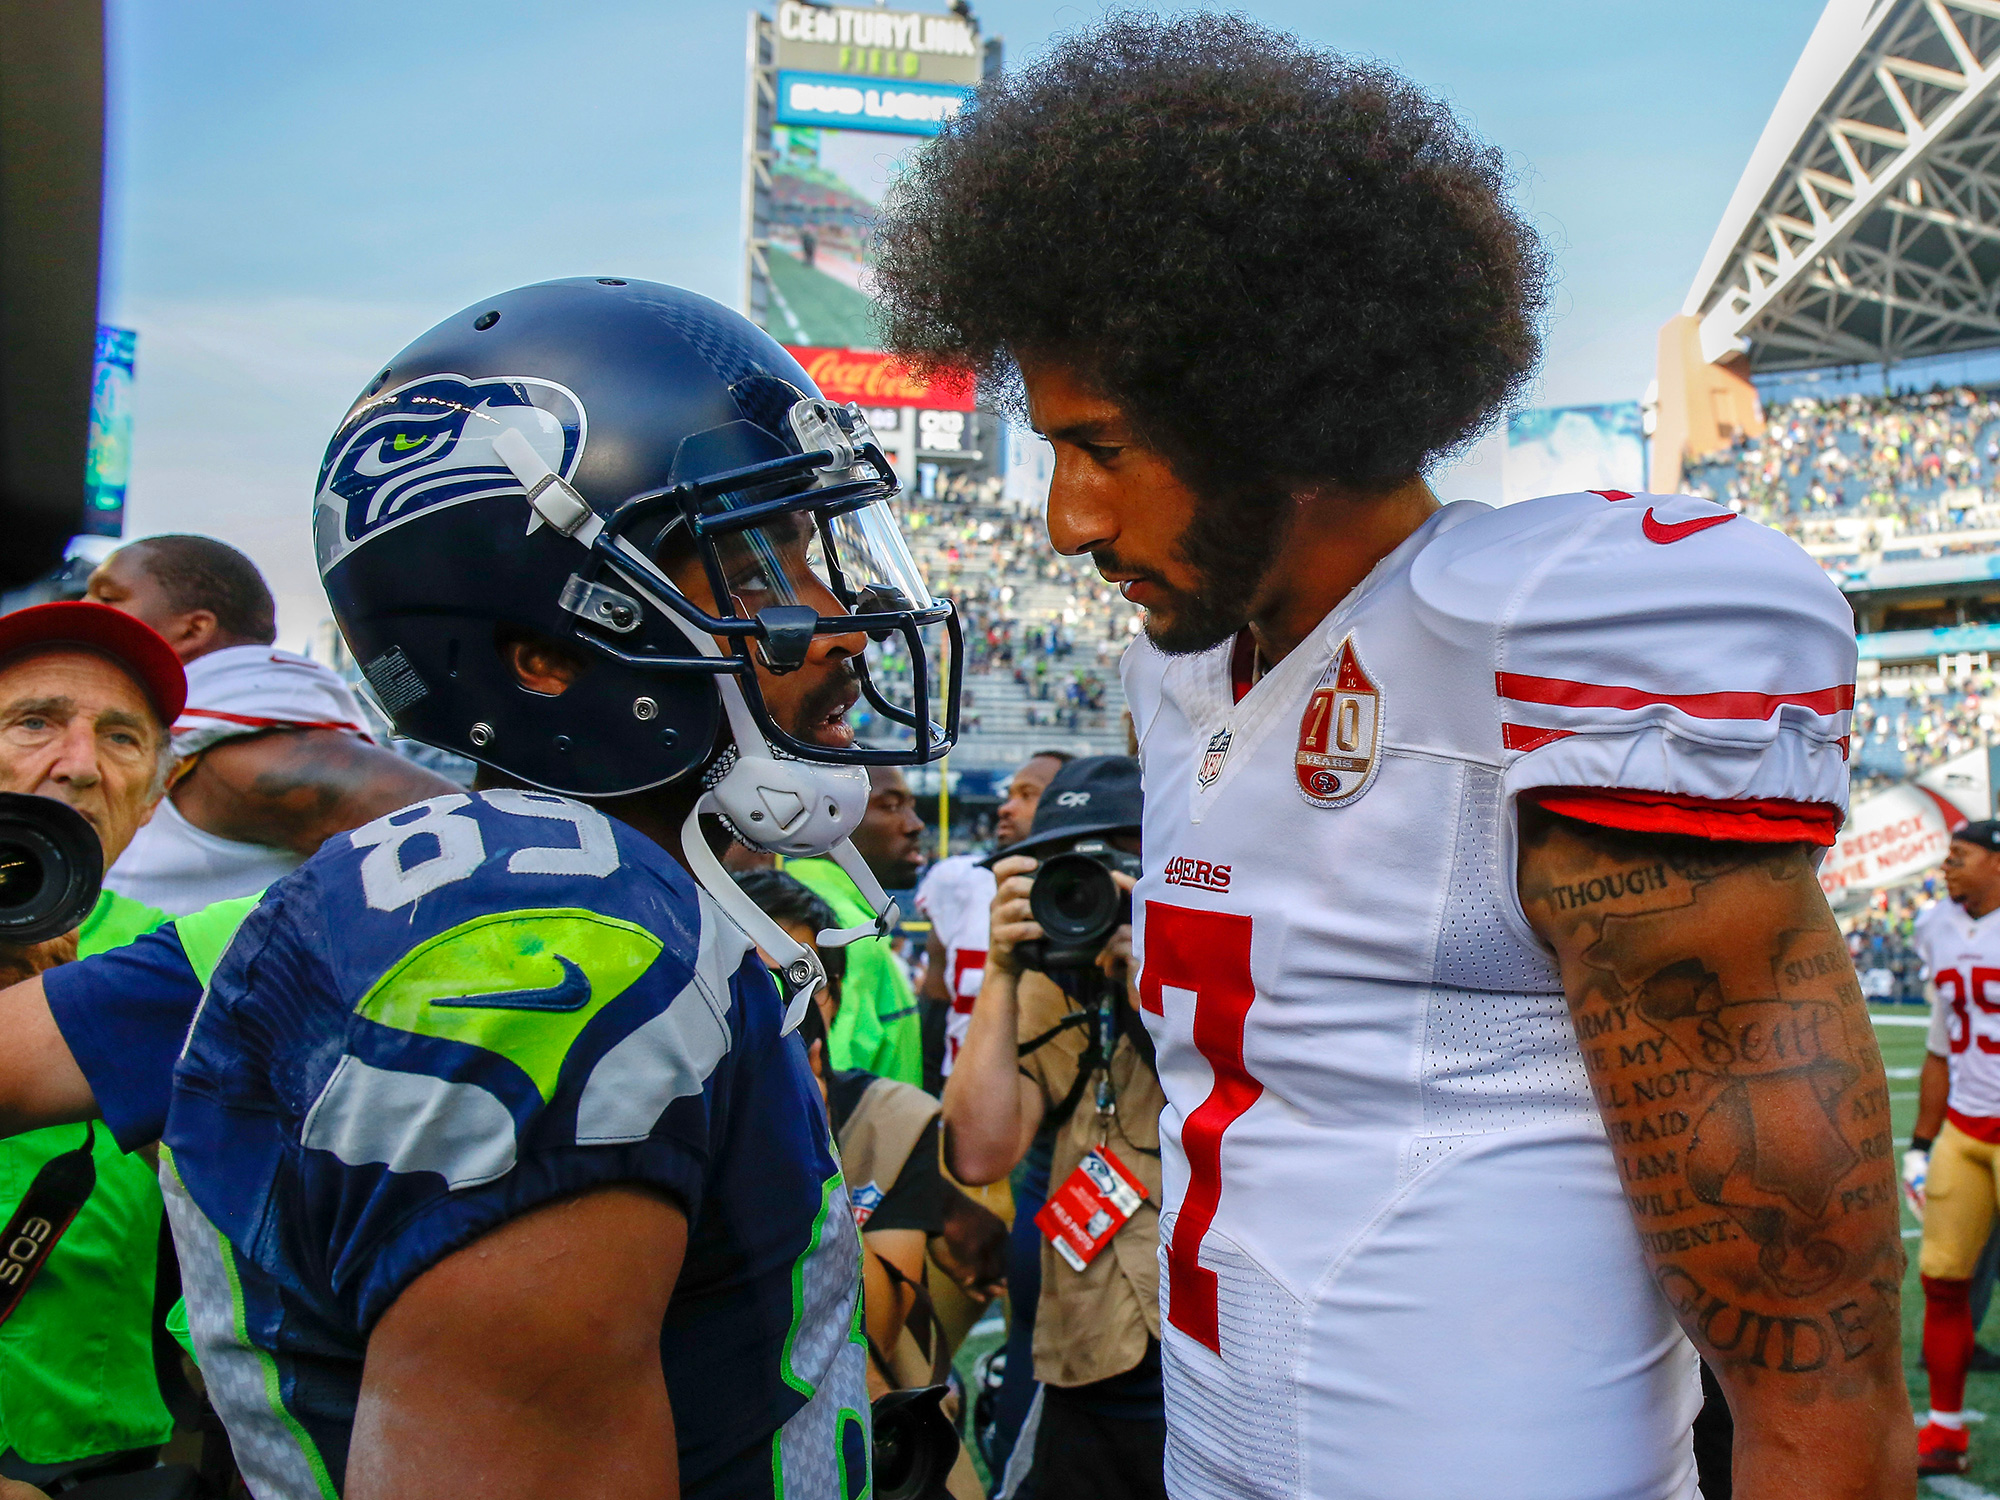 colin kaepernick protests ers qb has cemented legacy com getty images